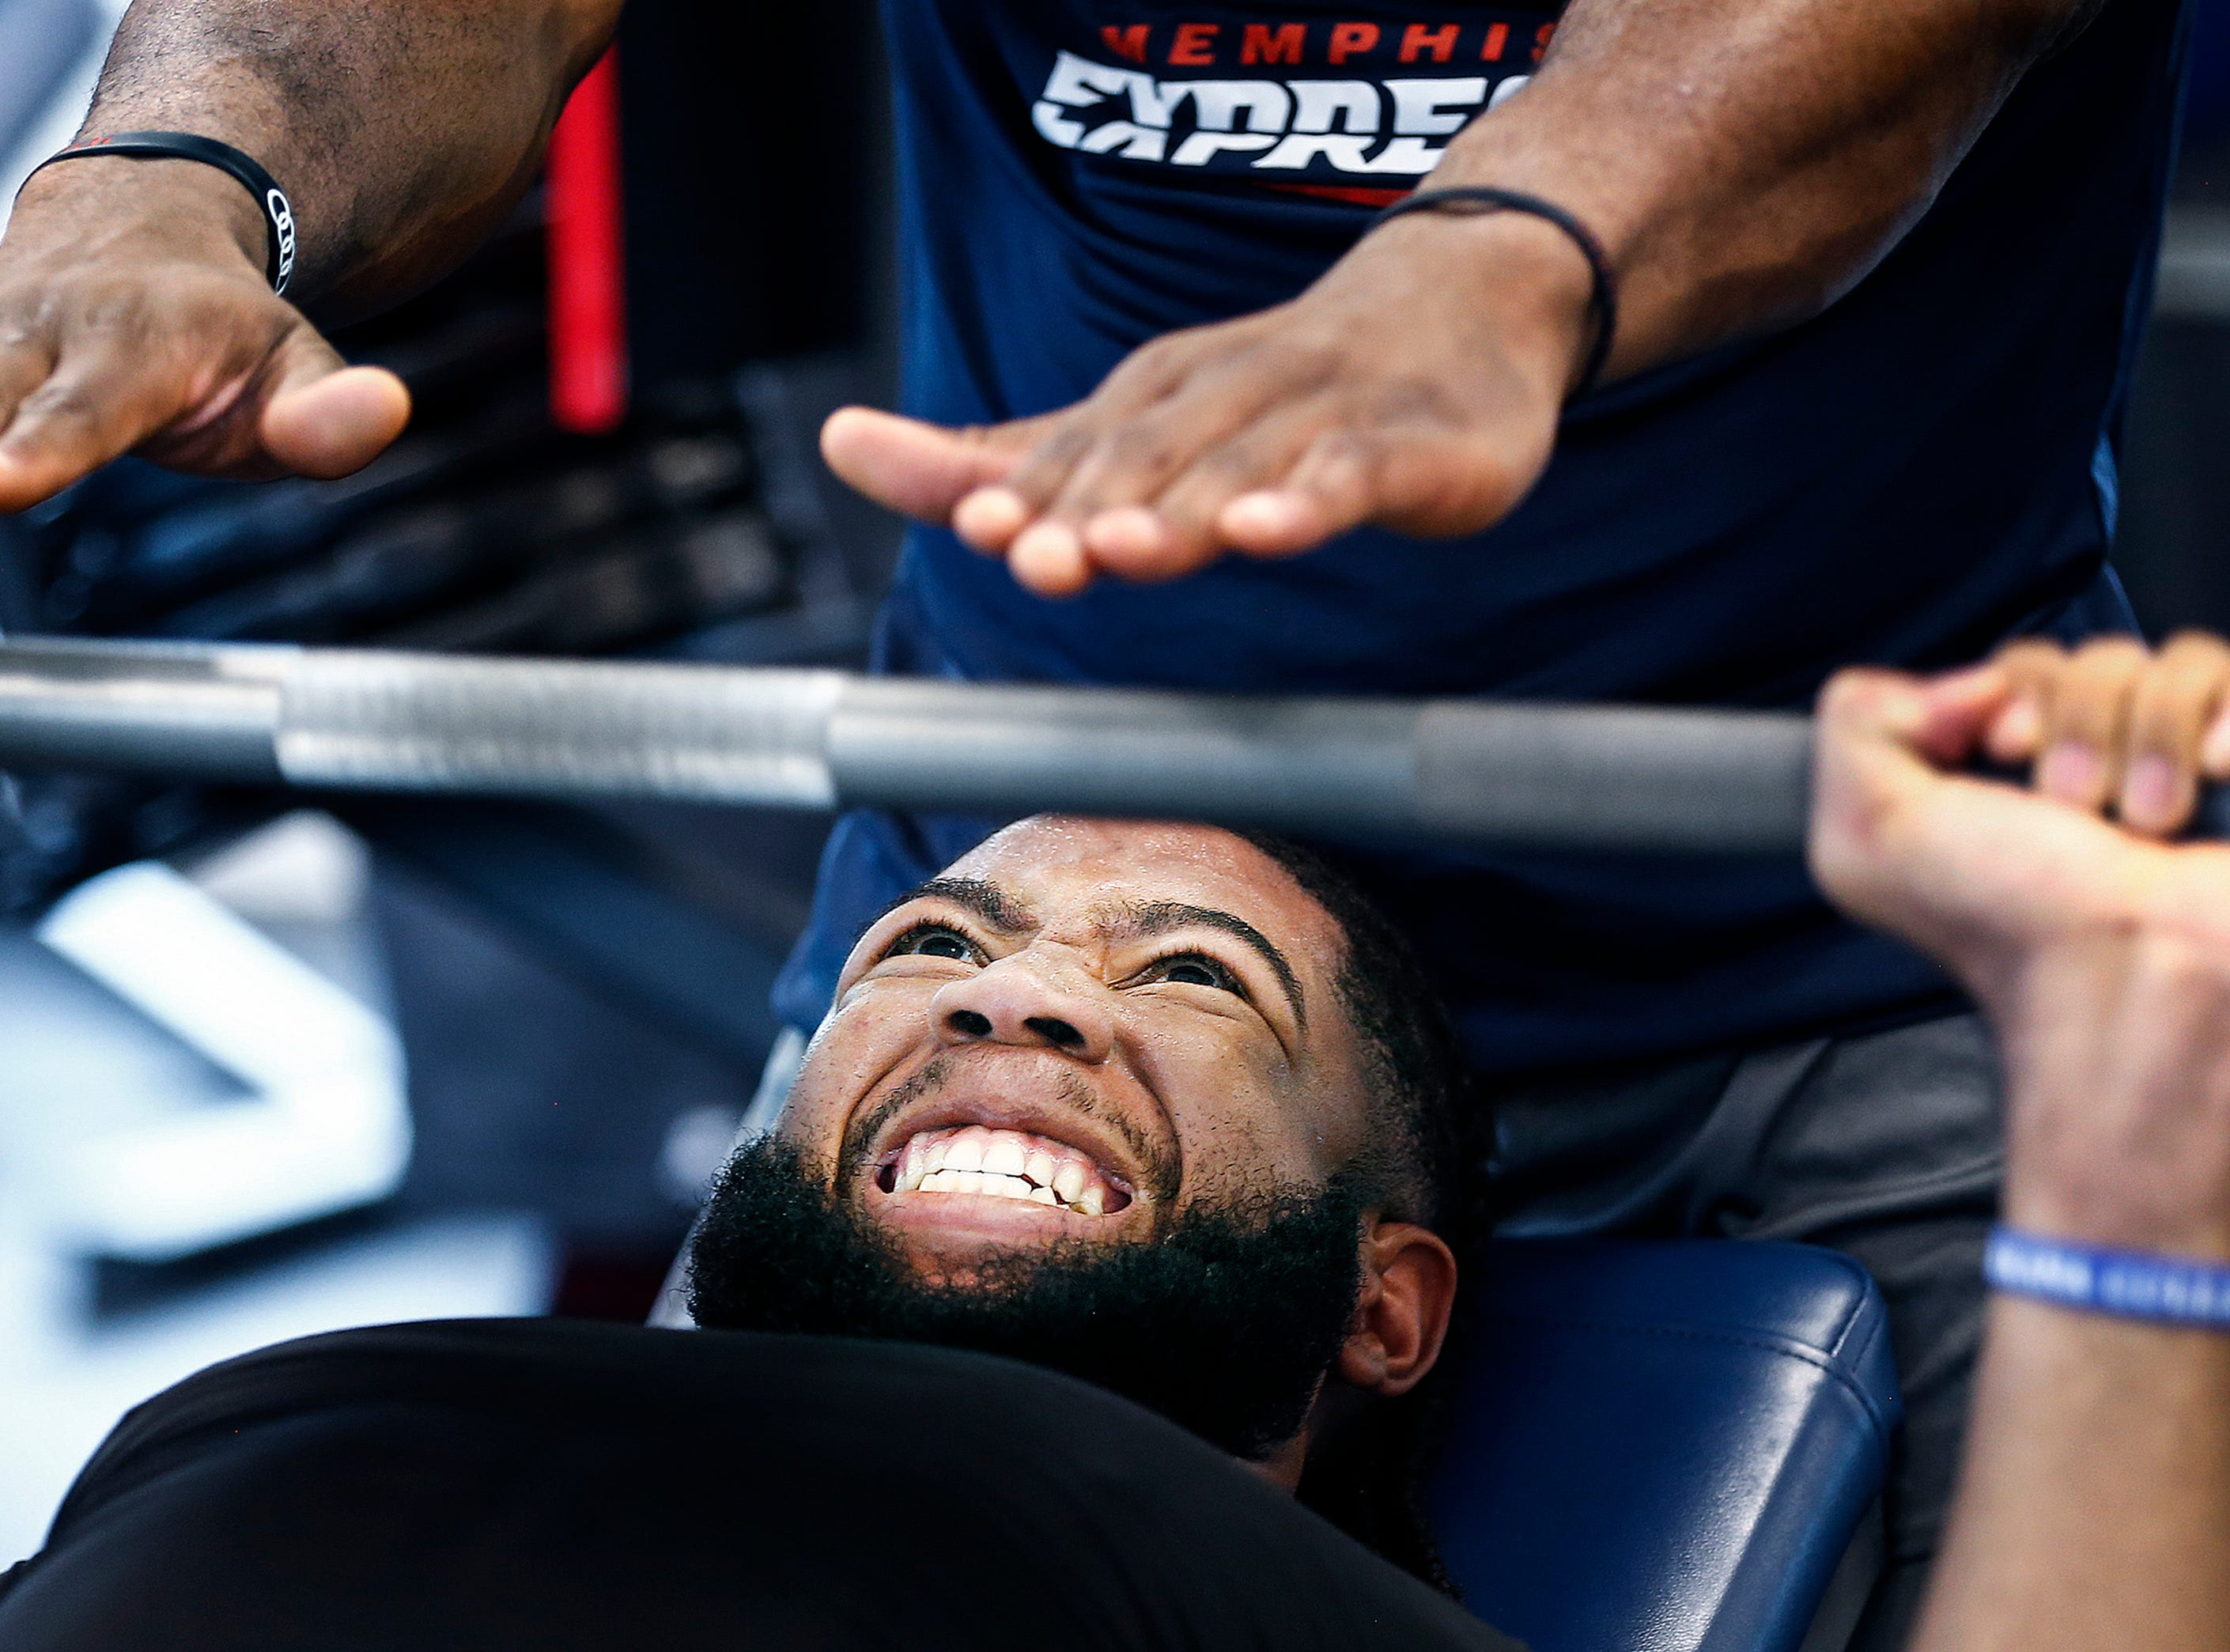 Memphis Express linebacker Anthony Rhone lifts weights during training camp in San Antonio, Texas.